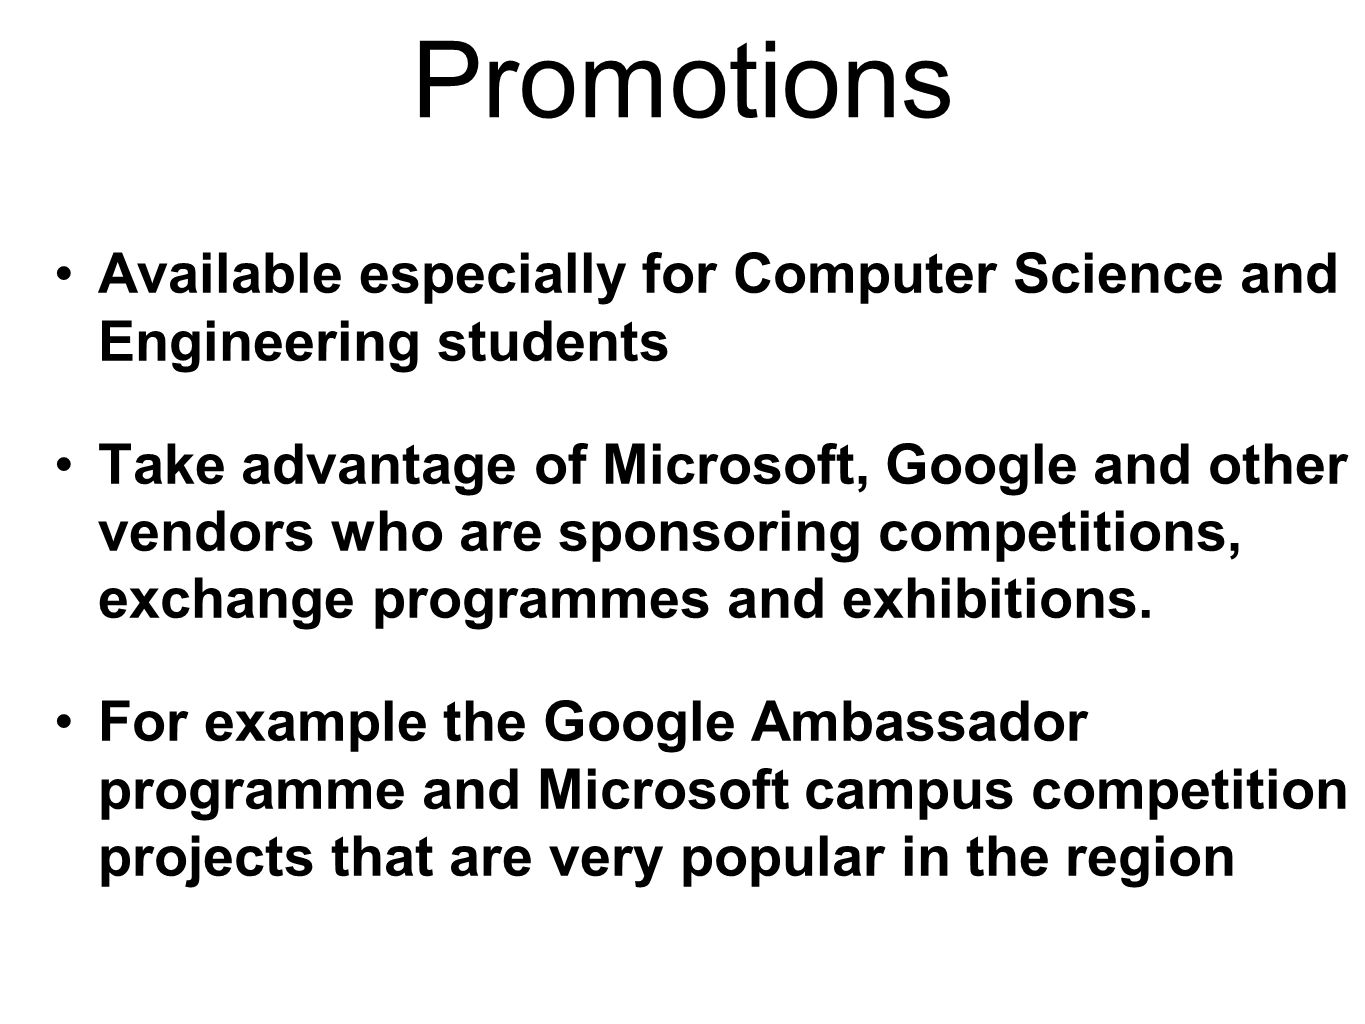 Promotions Available especially for Computer Science and Engineering students Take advantage of Microsoft, Google and other vendors who are sponsoring competitions, exchange programmes and exhibitions.